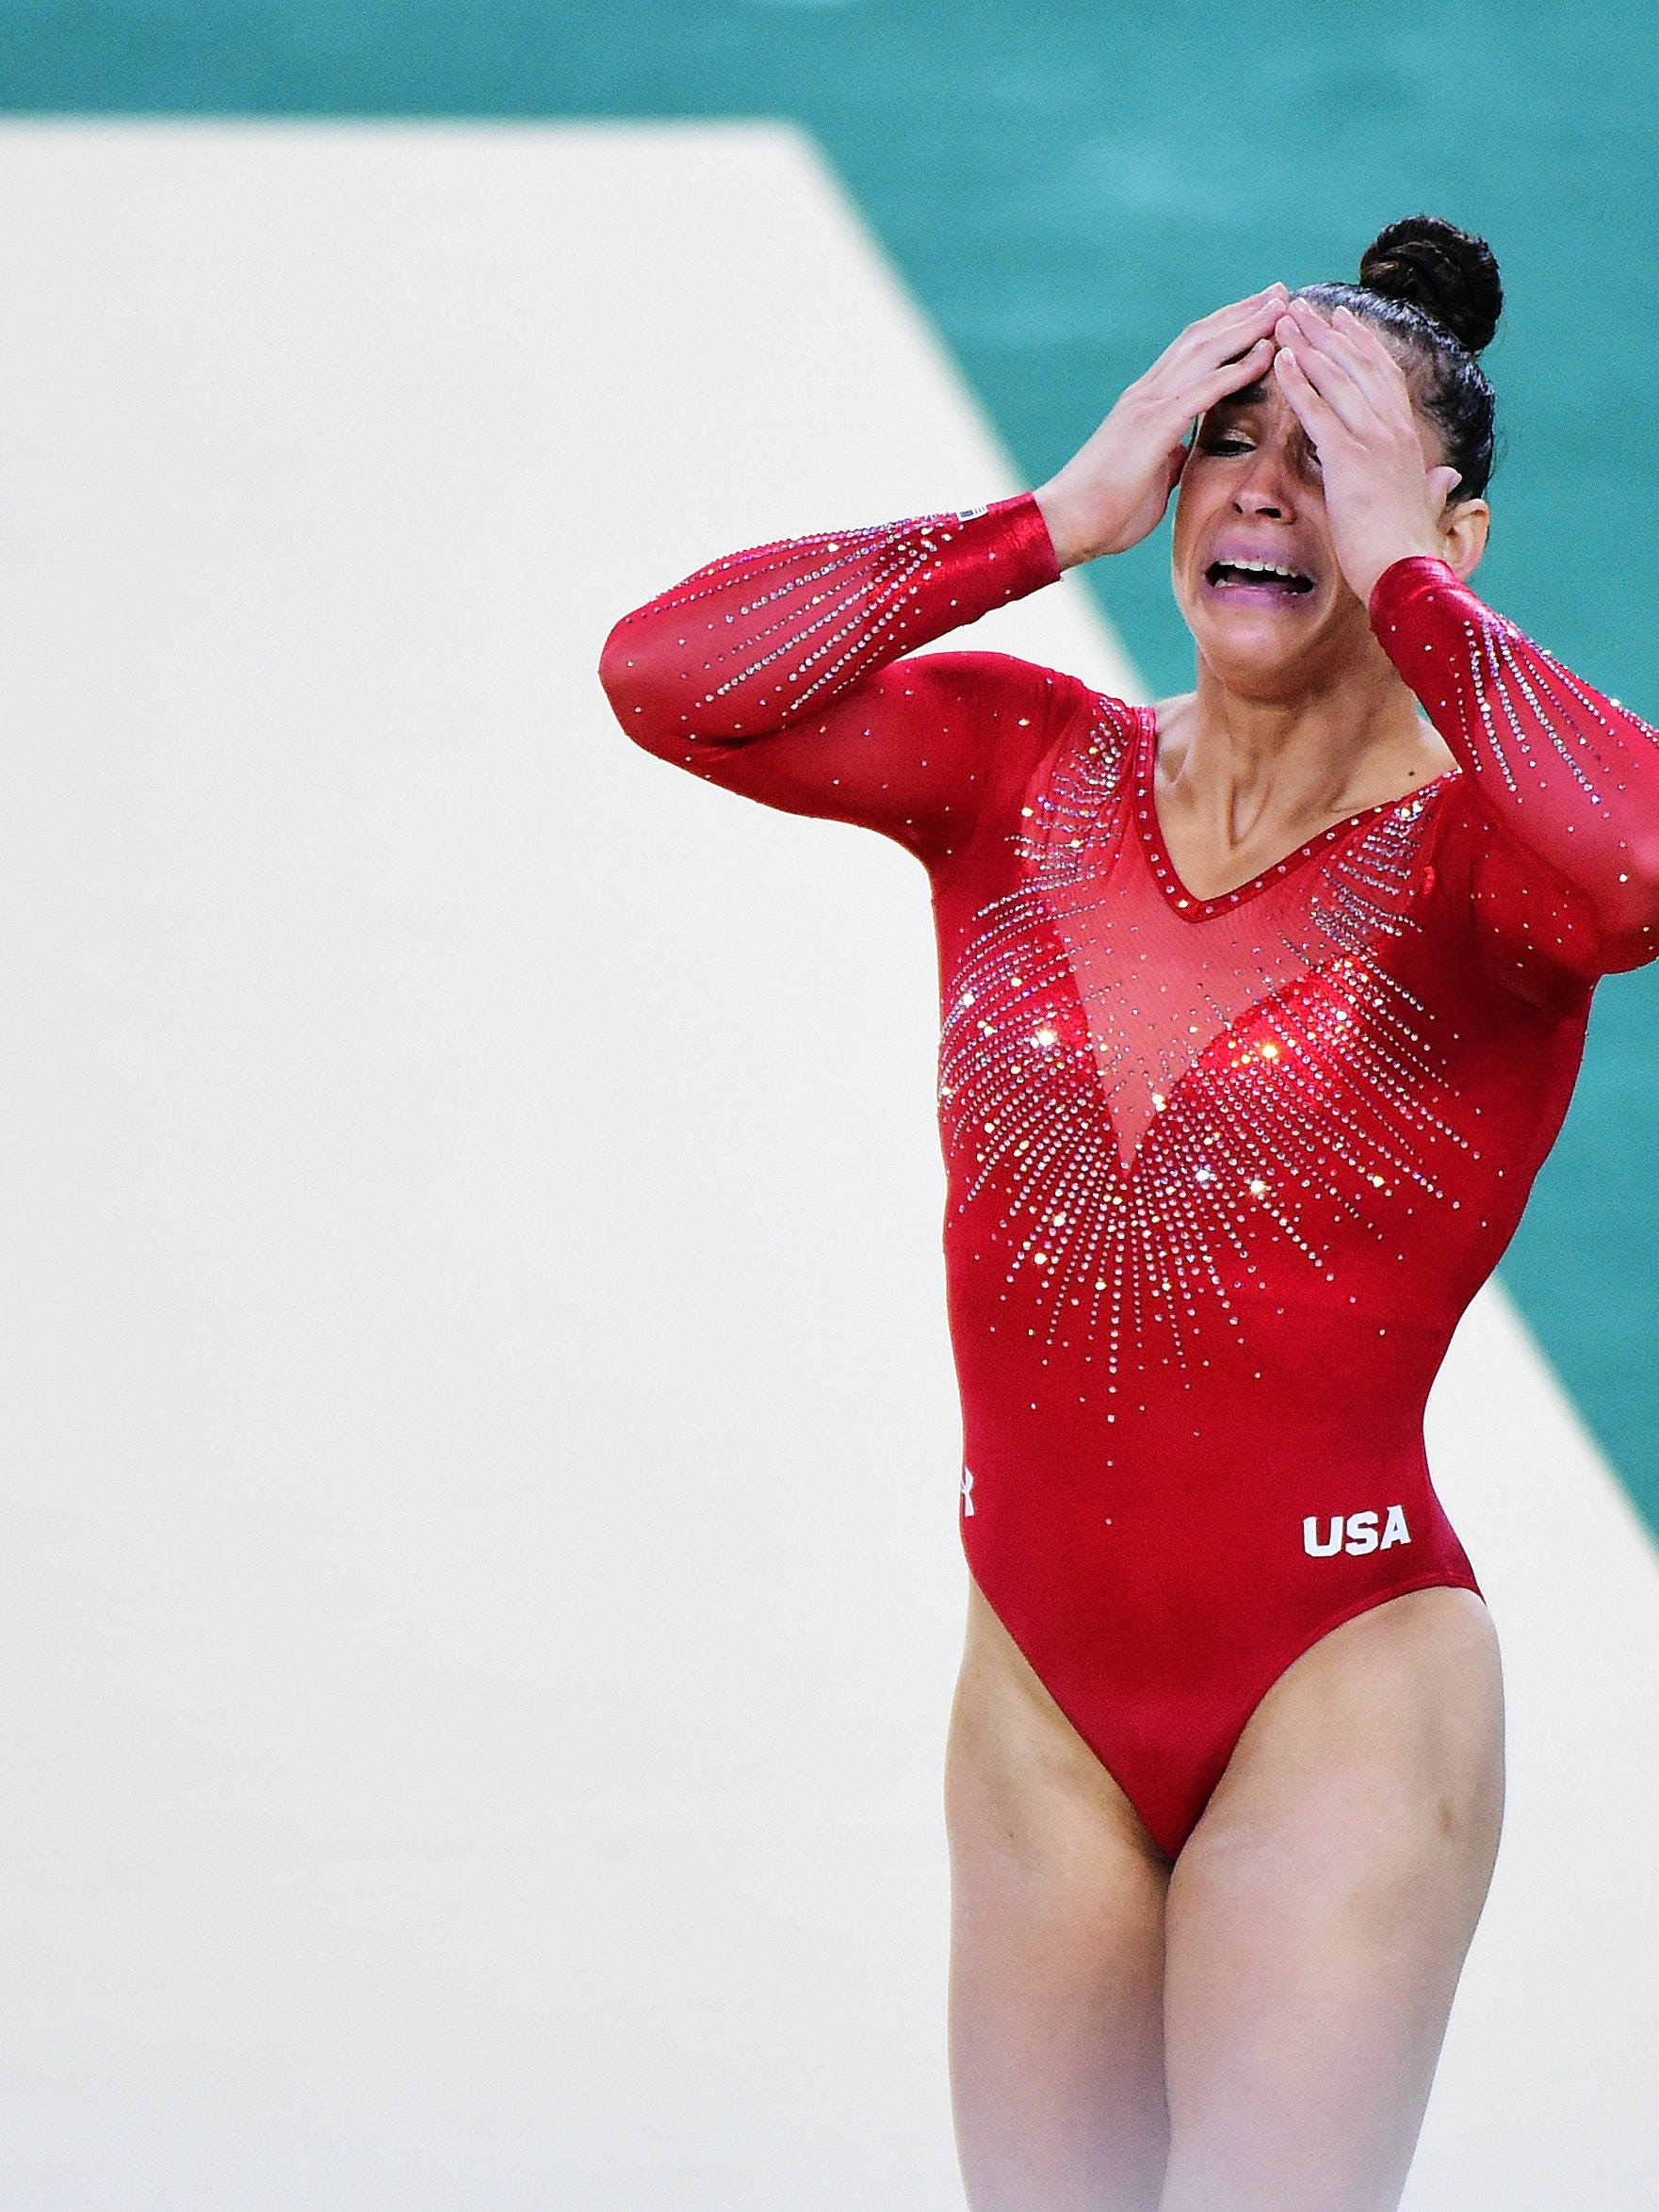 RIO DE JANEIRO, BRAZIL - AUGUST 11:  Alexandra Raisman of the United States reacts after competing on the floor during the Women's Individual All Around Final on Day 6 of the 2016 Rio Olympics at Rio Olympic Arena on August 11, 2016 in Rio de Janeiro, Brazil.  (Photo by Harry How/Getty Images)